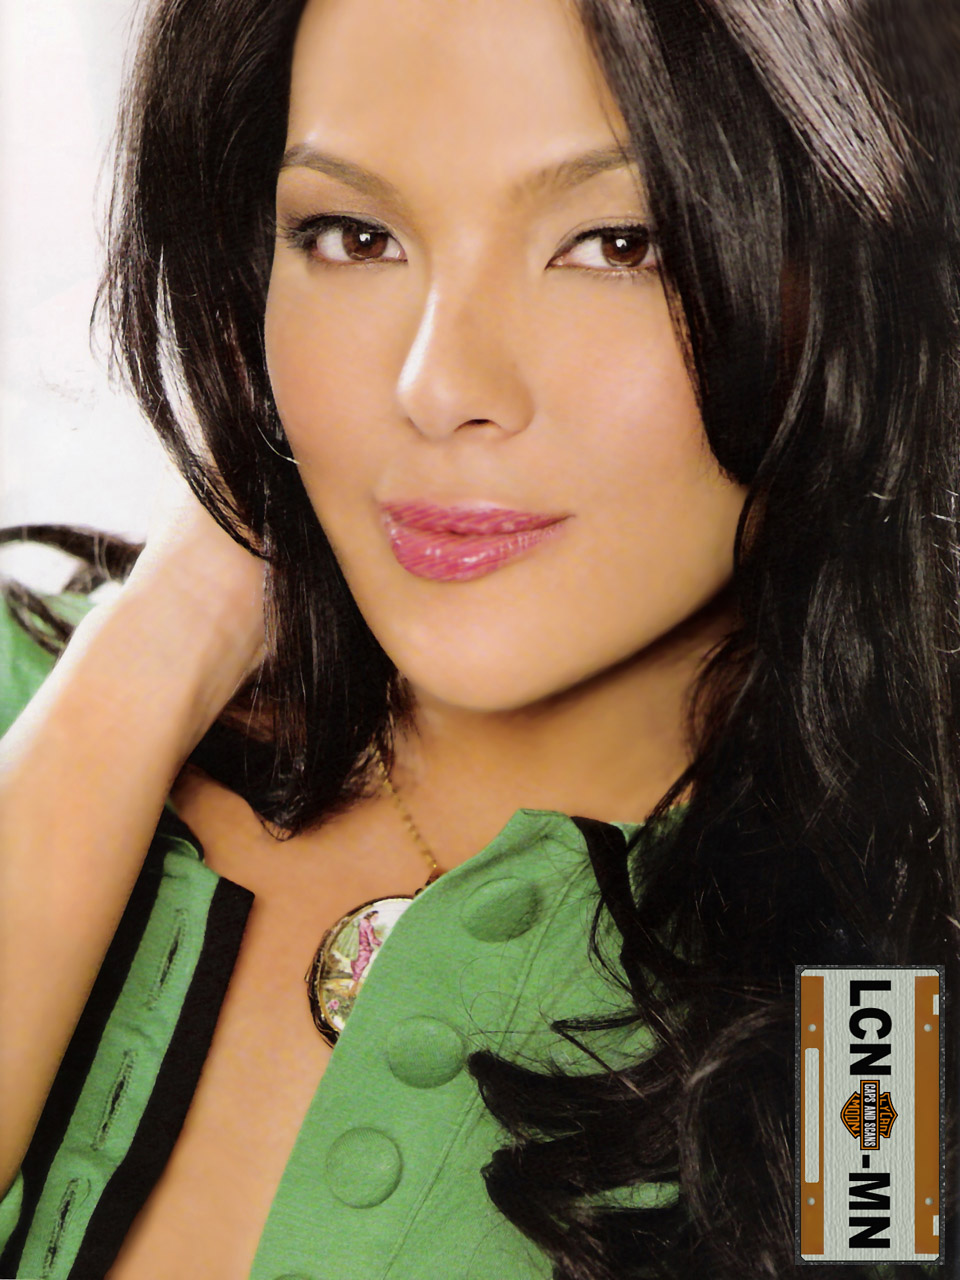 KC Concepcion Hot Pictures http://sexiestpinays.blogspot.com/2009/12/kc-concepcion-sexy-cleavage-photos.html